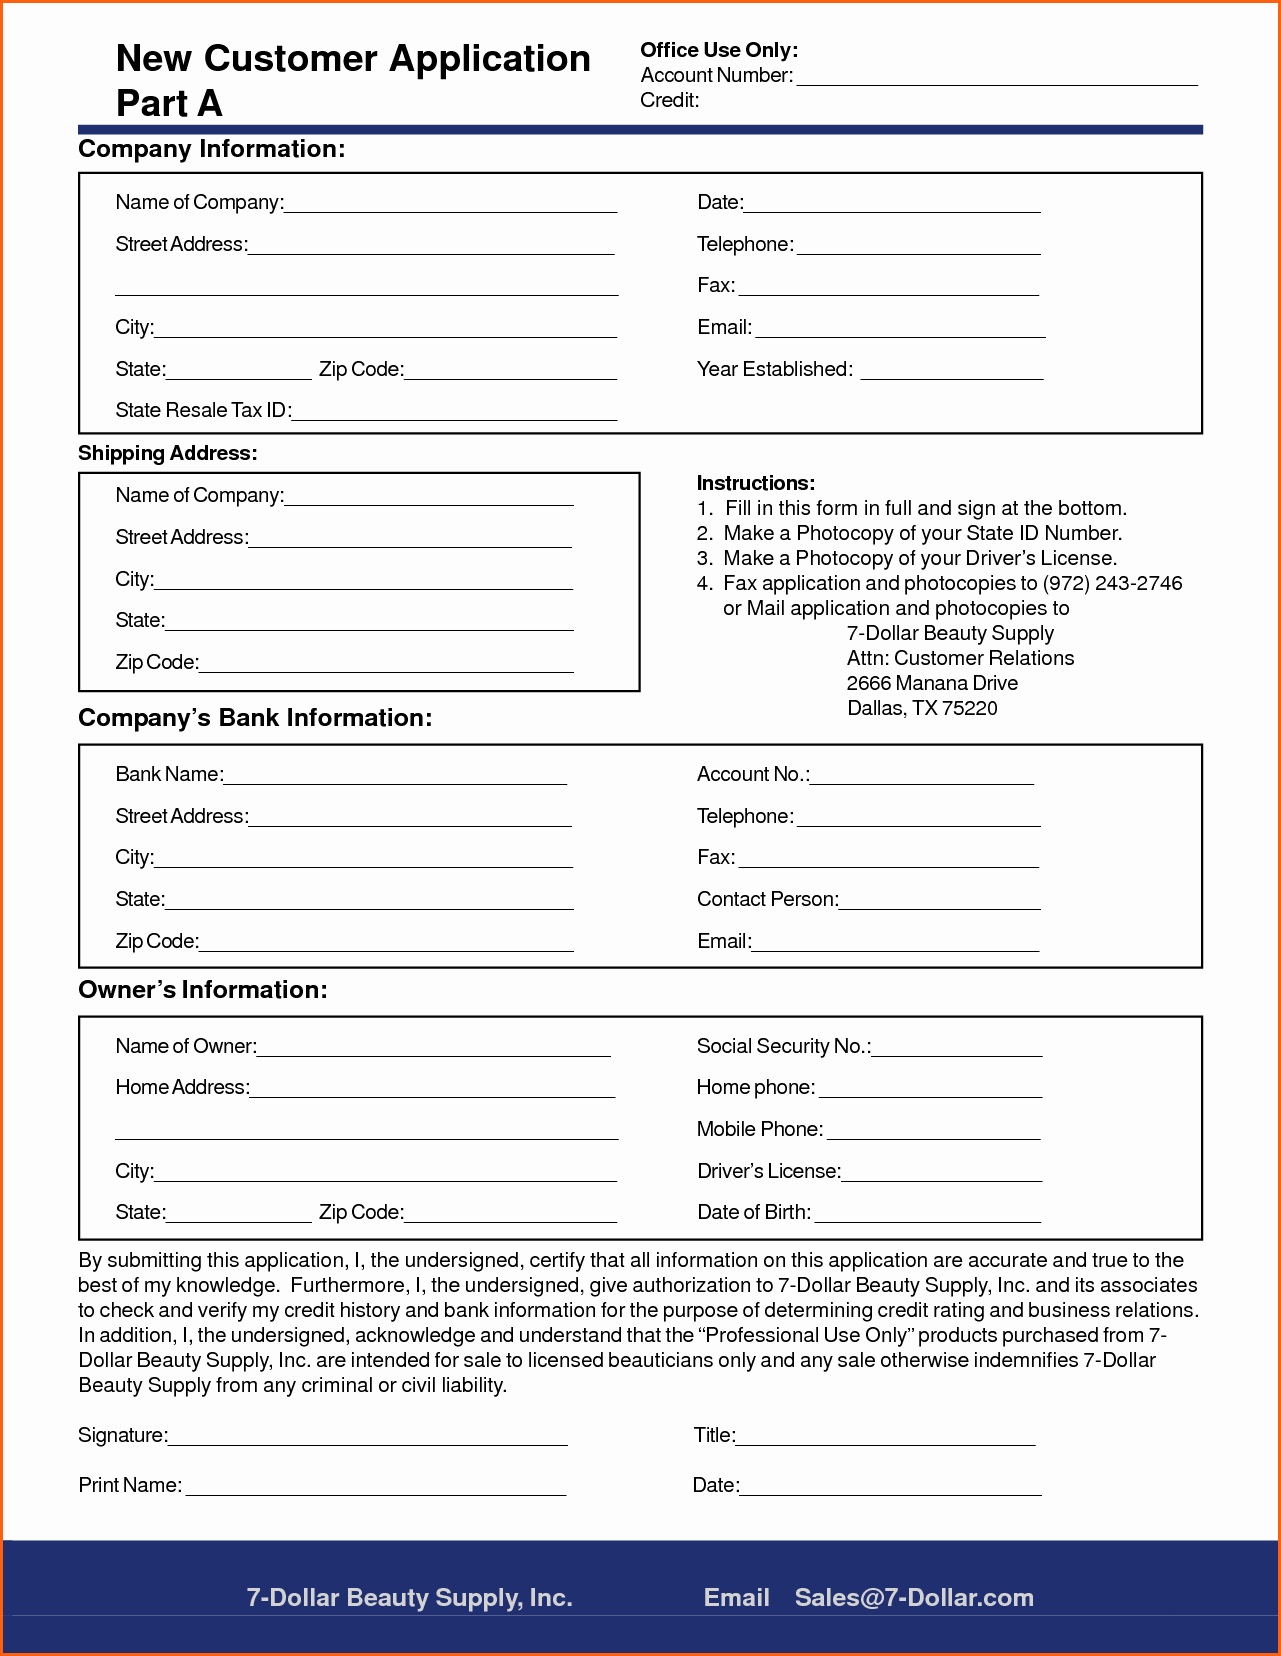 New Customer form Template Unique New Customer form Template Word Portablegasgrillweber